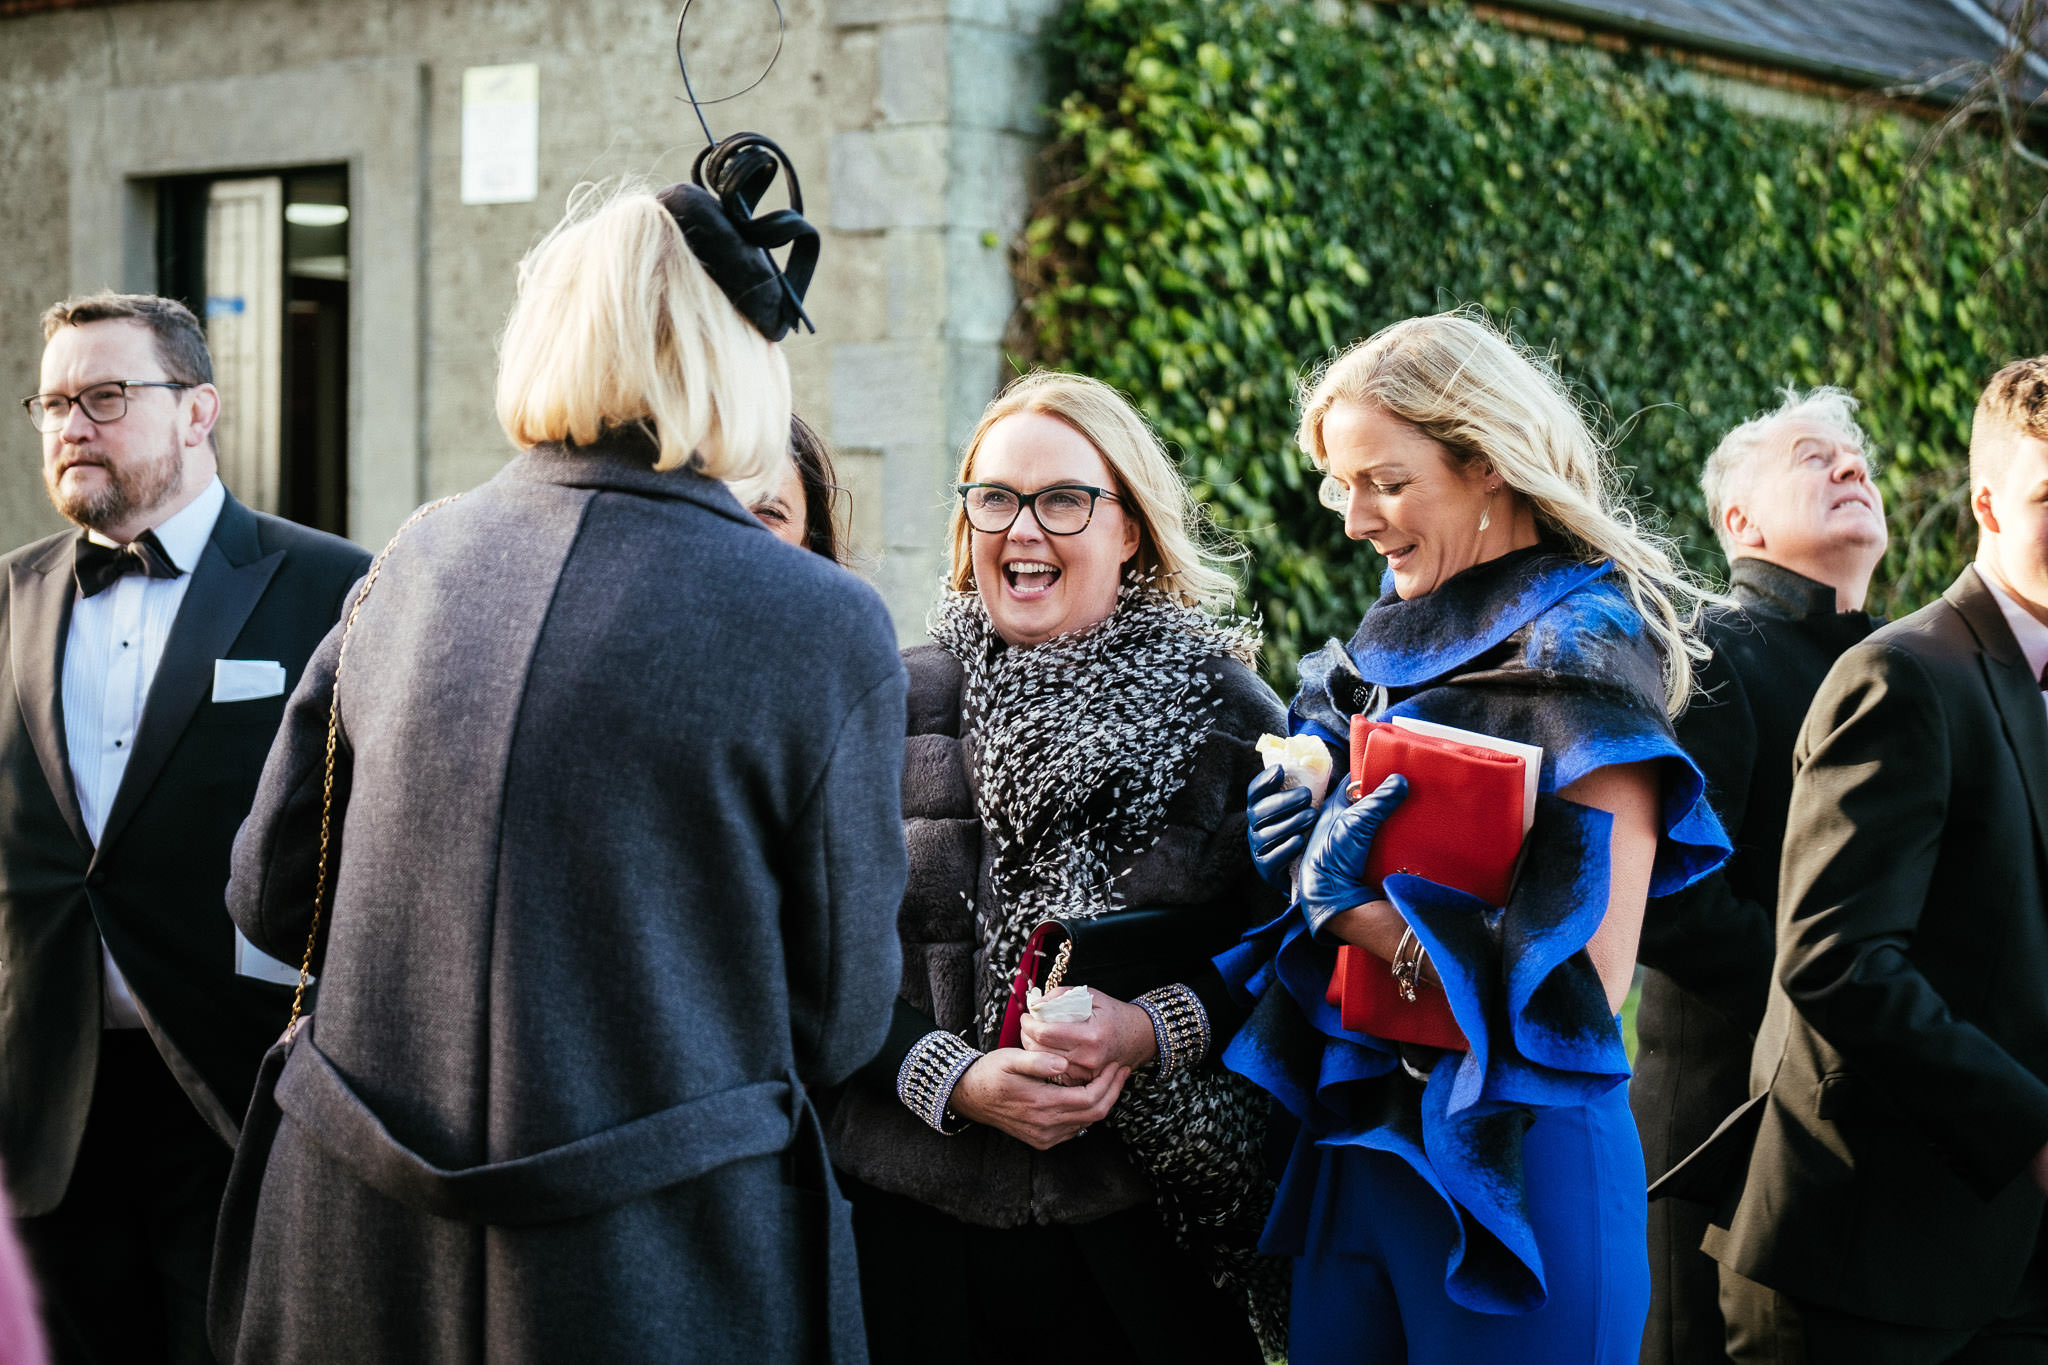 wedding guests laughing after their wedding ceremony at St Brigid's Church Oldcastle